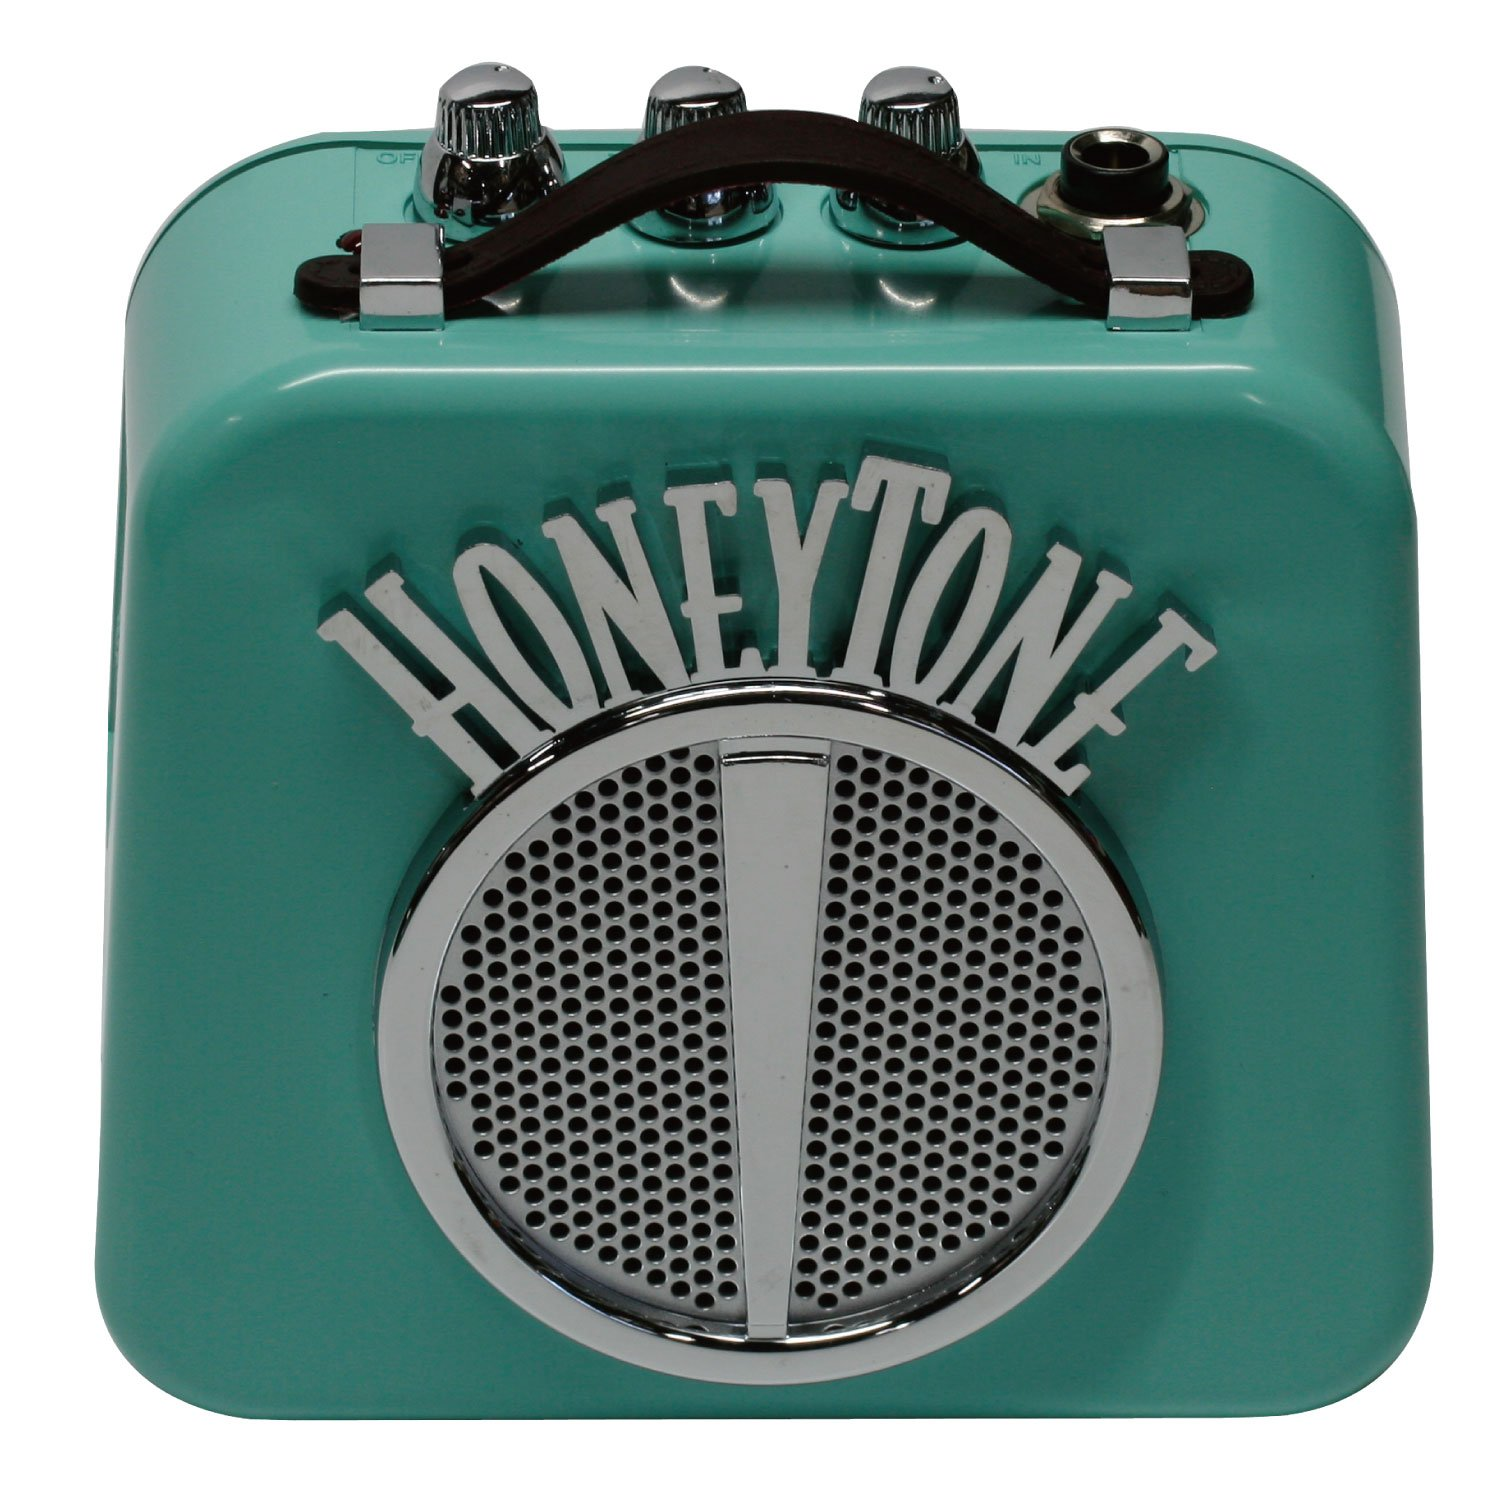 Danelectro Honeytone N-10 Guitar Mini Amp, Aqua by Danelectro